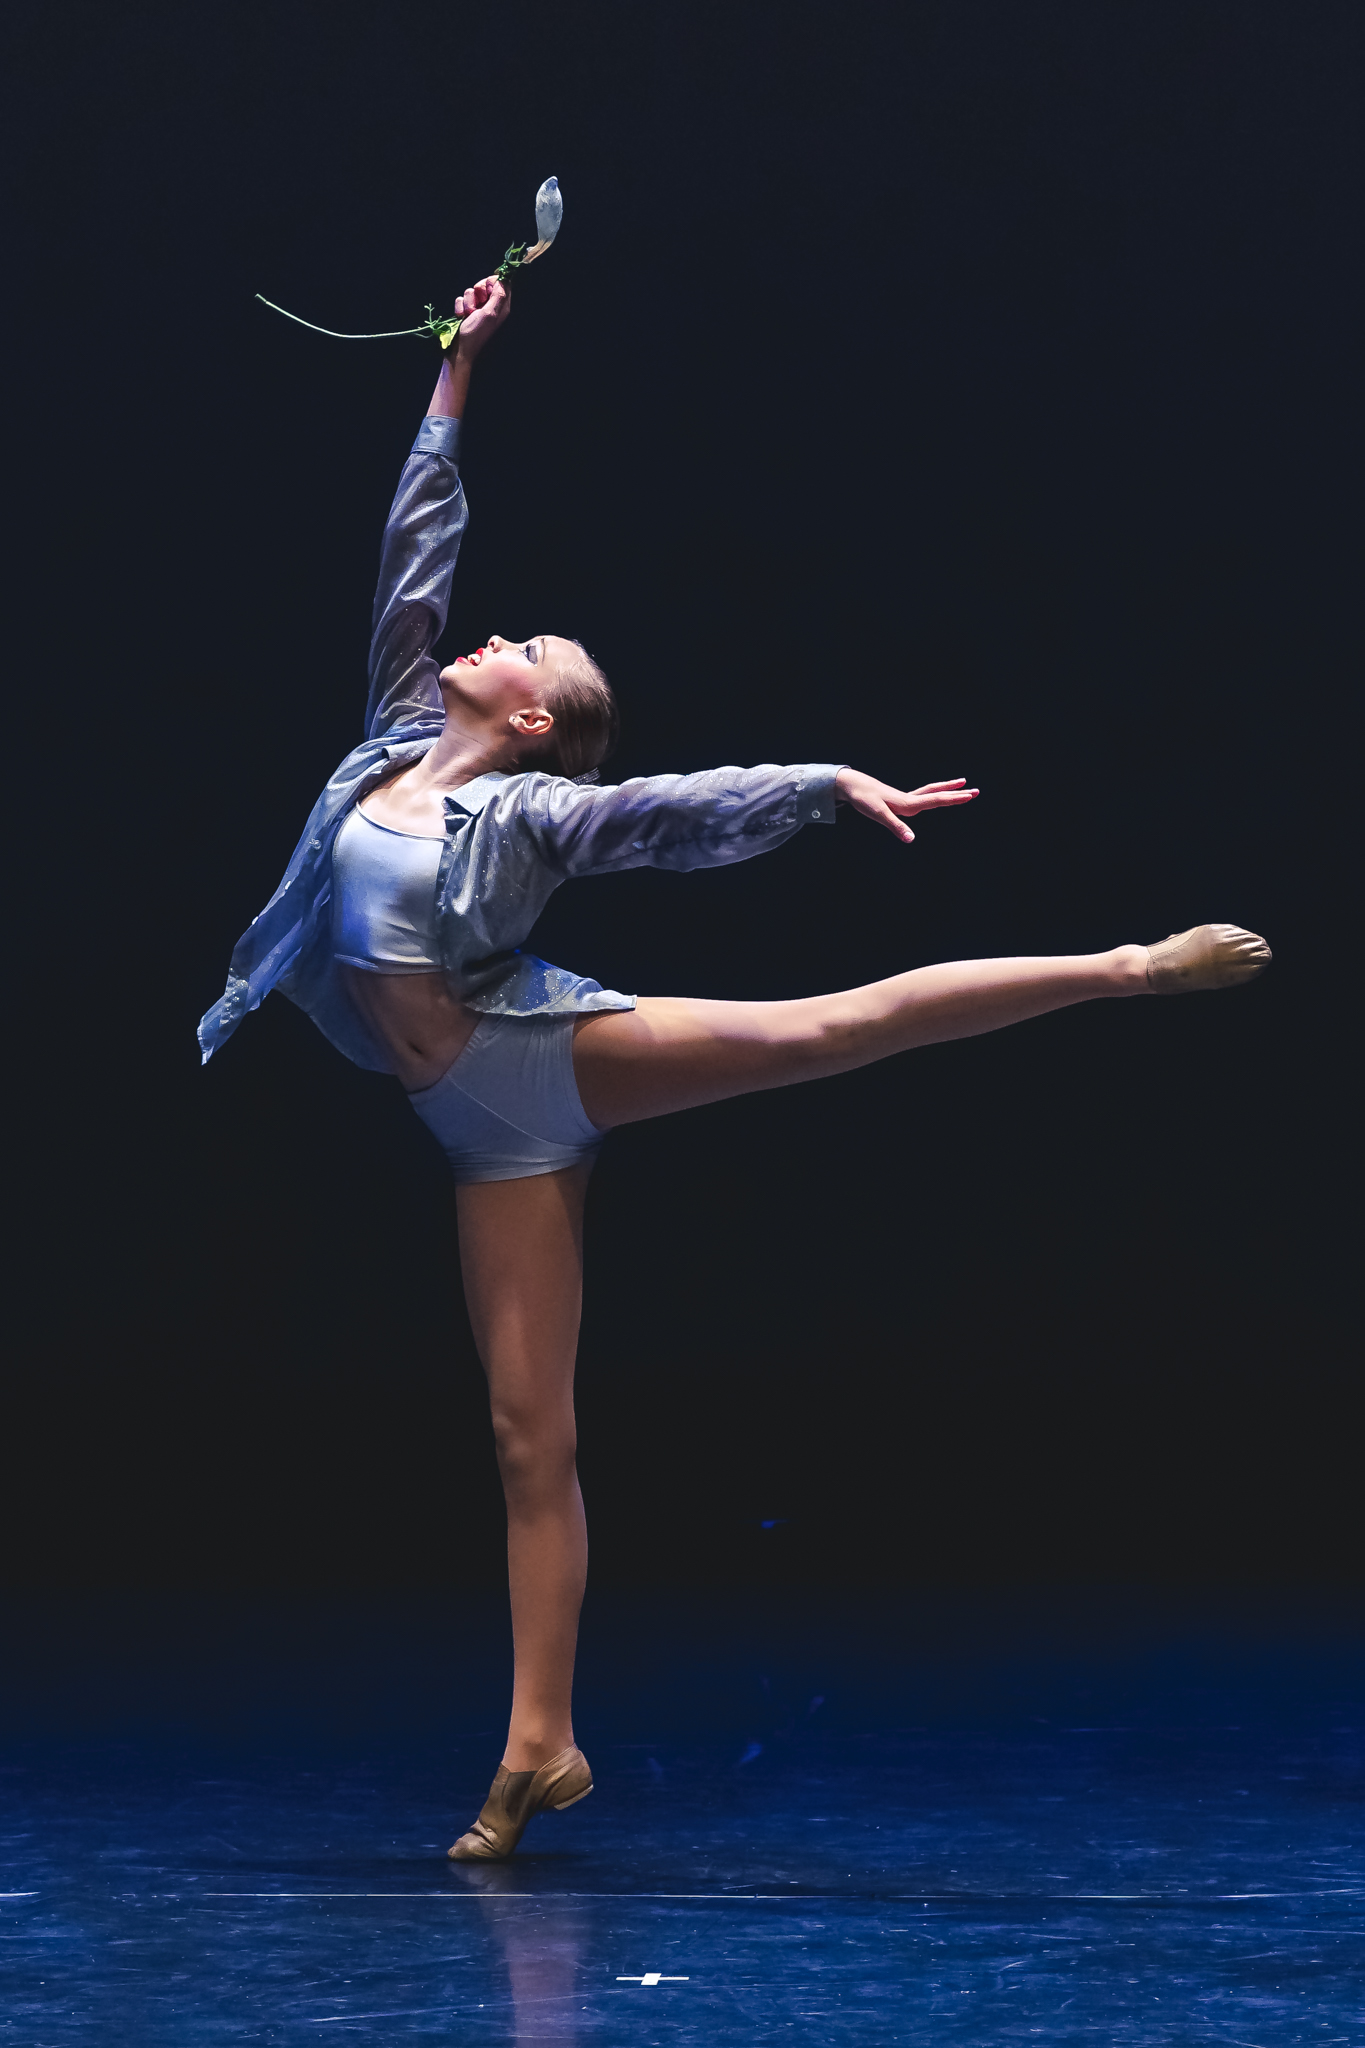 Dance Photography Capturing Dancers At Their Very Best